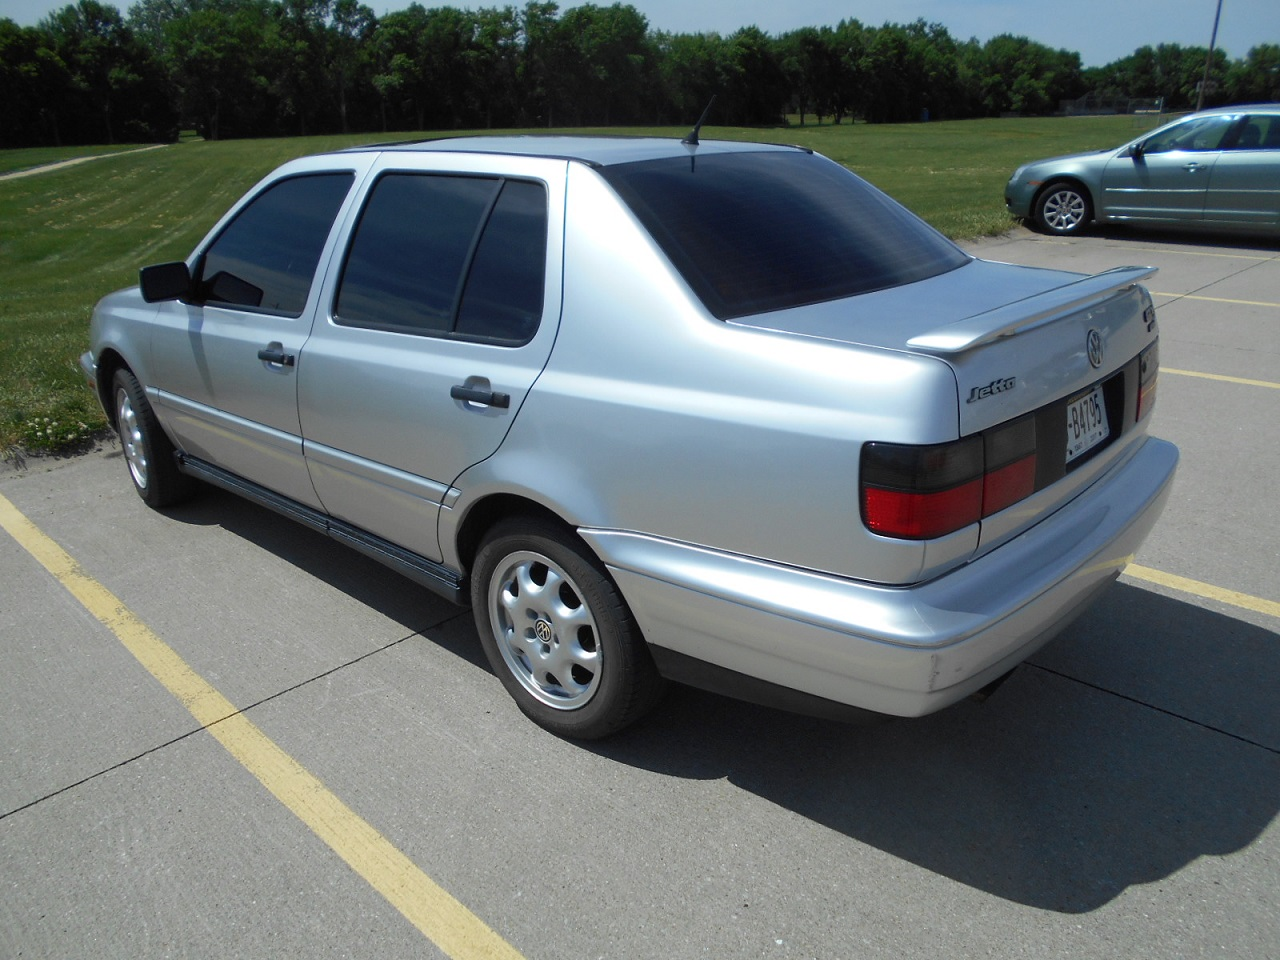 pennysaver 1999 vw jetta glx vr6 in hall nebraska usa pennysaver 1999 vw jetta glx vr6 in